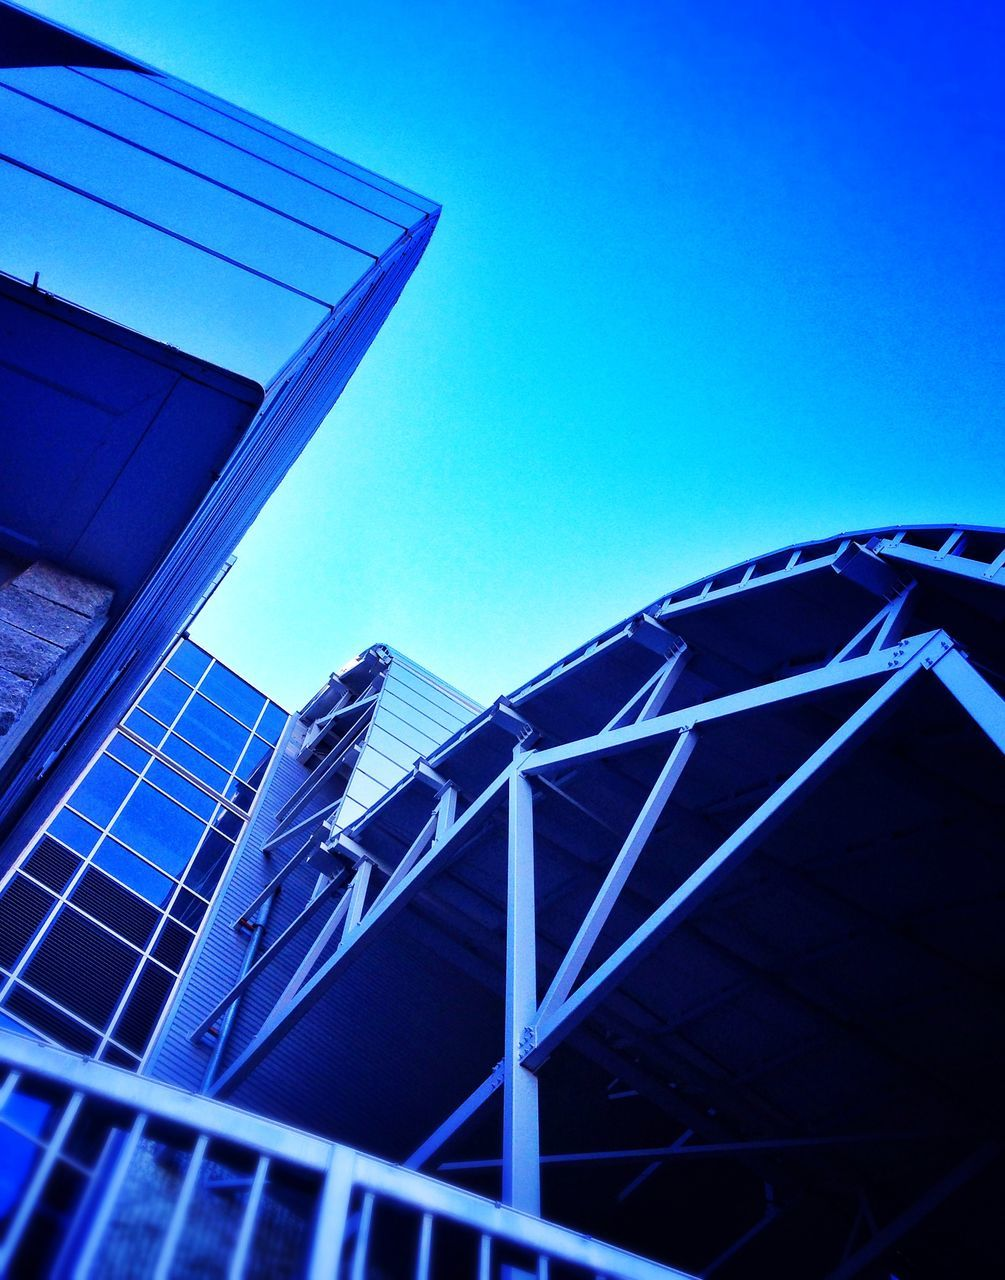 architecture, built structure, low angle view, building exterior, clear sky, blue, outdoors, day, no people, modern, city, sky